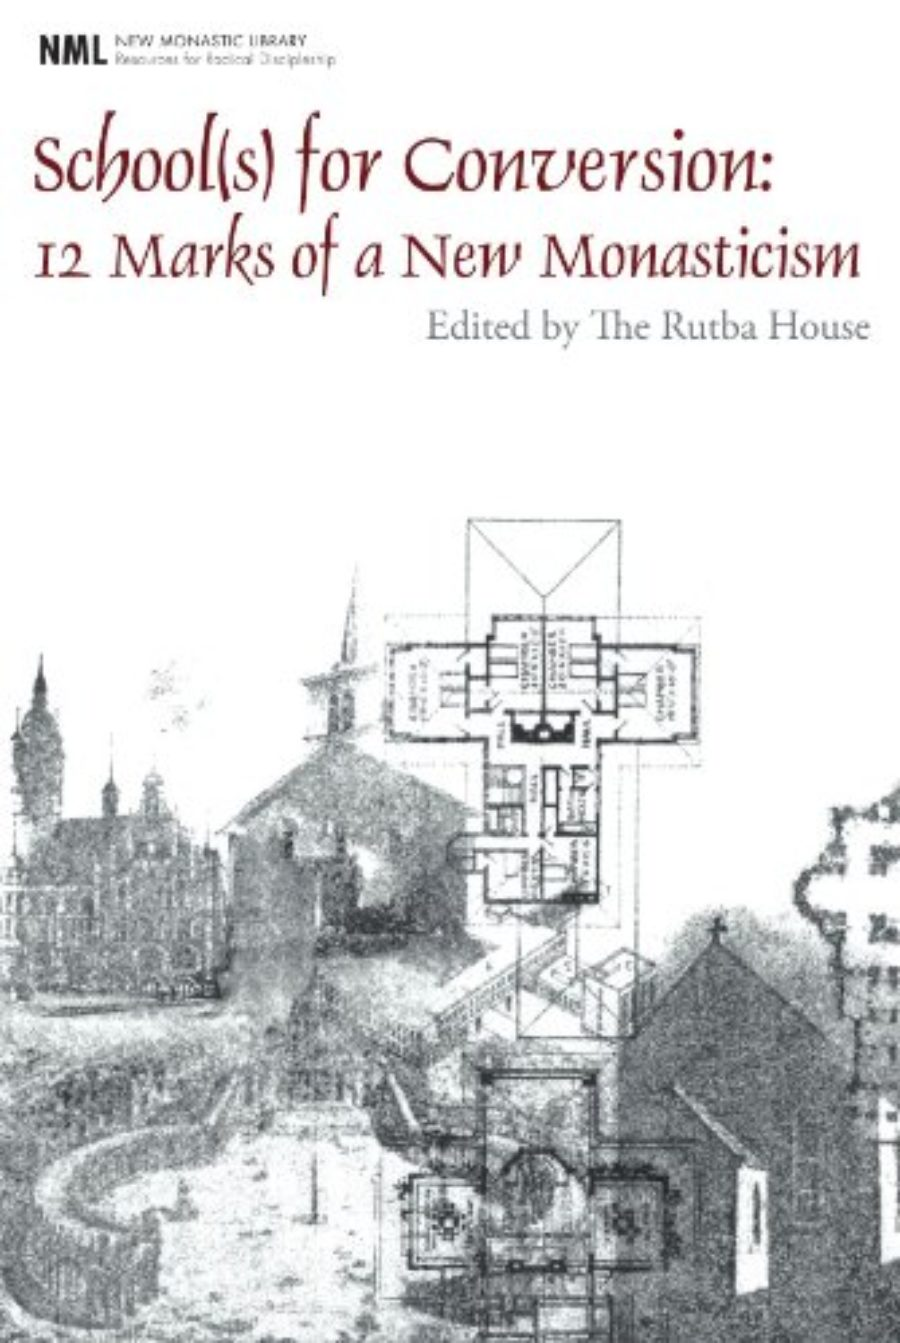 Cover of School(s) for Conversion: 12 Marks of a New Monasticism (New Monastic Library: Resources for Radical Discipleship)